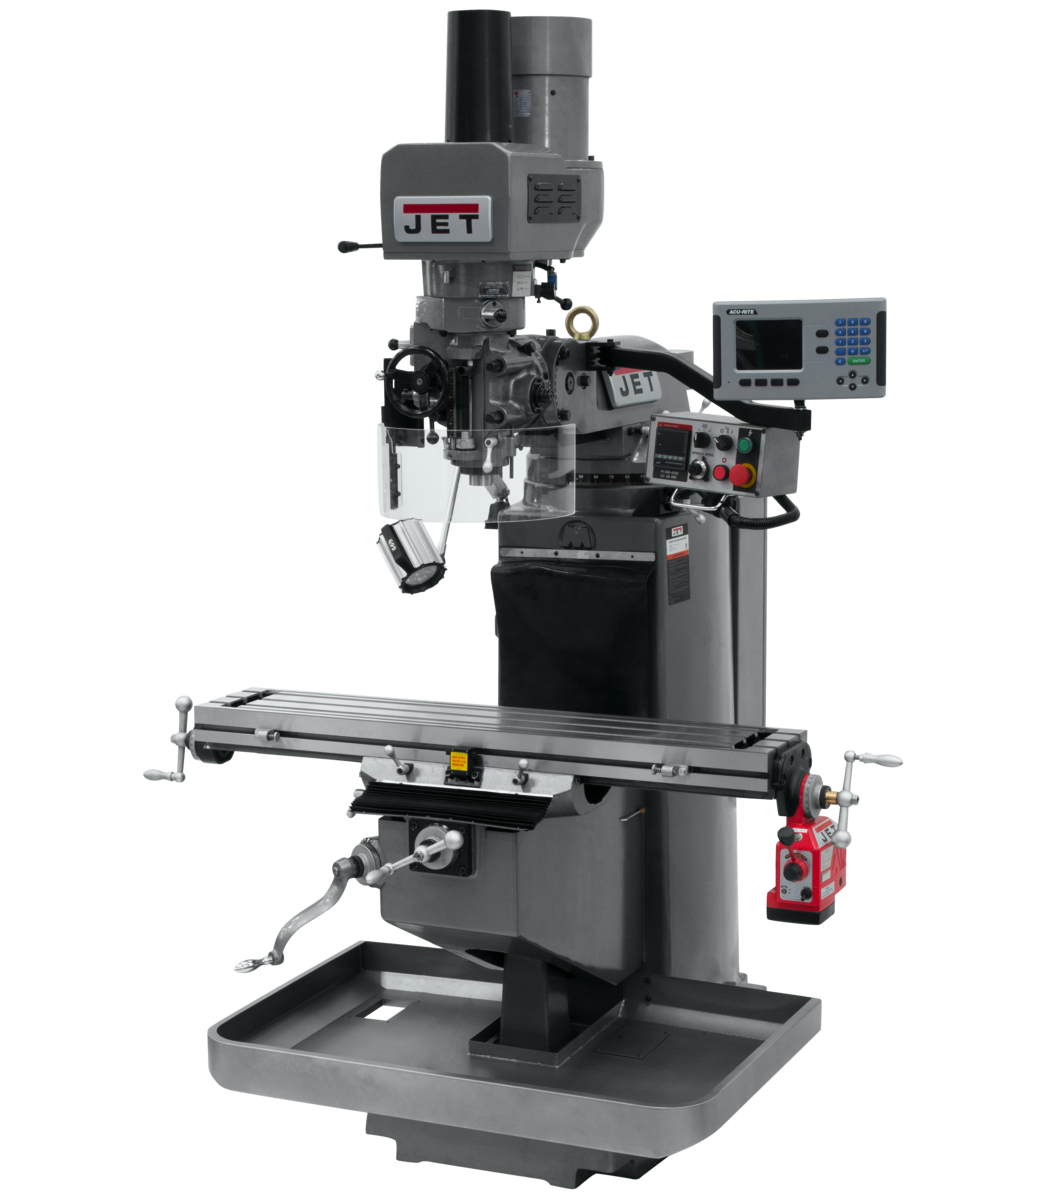 JTM-949EVS Mill With 3-Axis Acu-Rite 203 DRO (Quill) With X-Axis Powerfeed and Air Powered Draw Bar